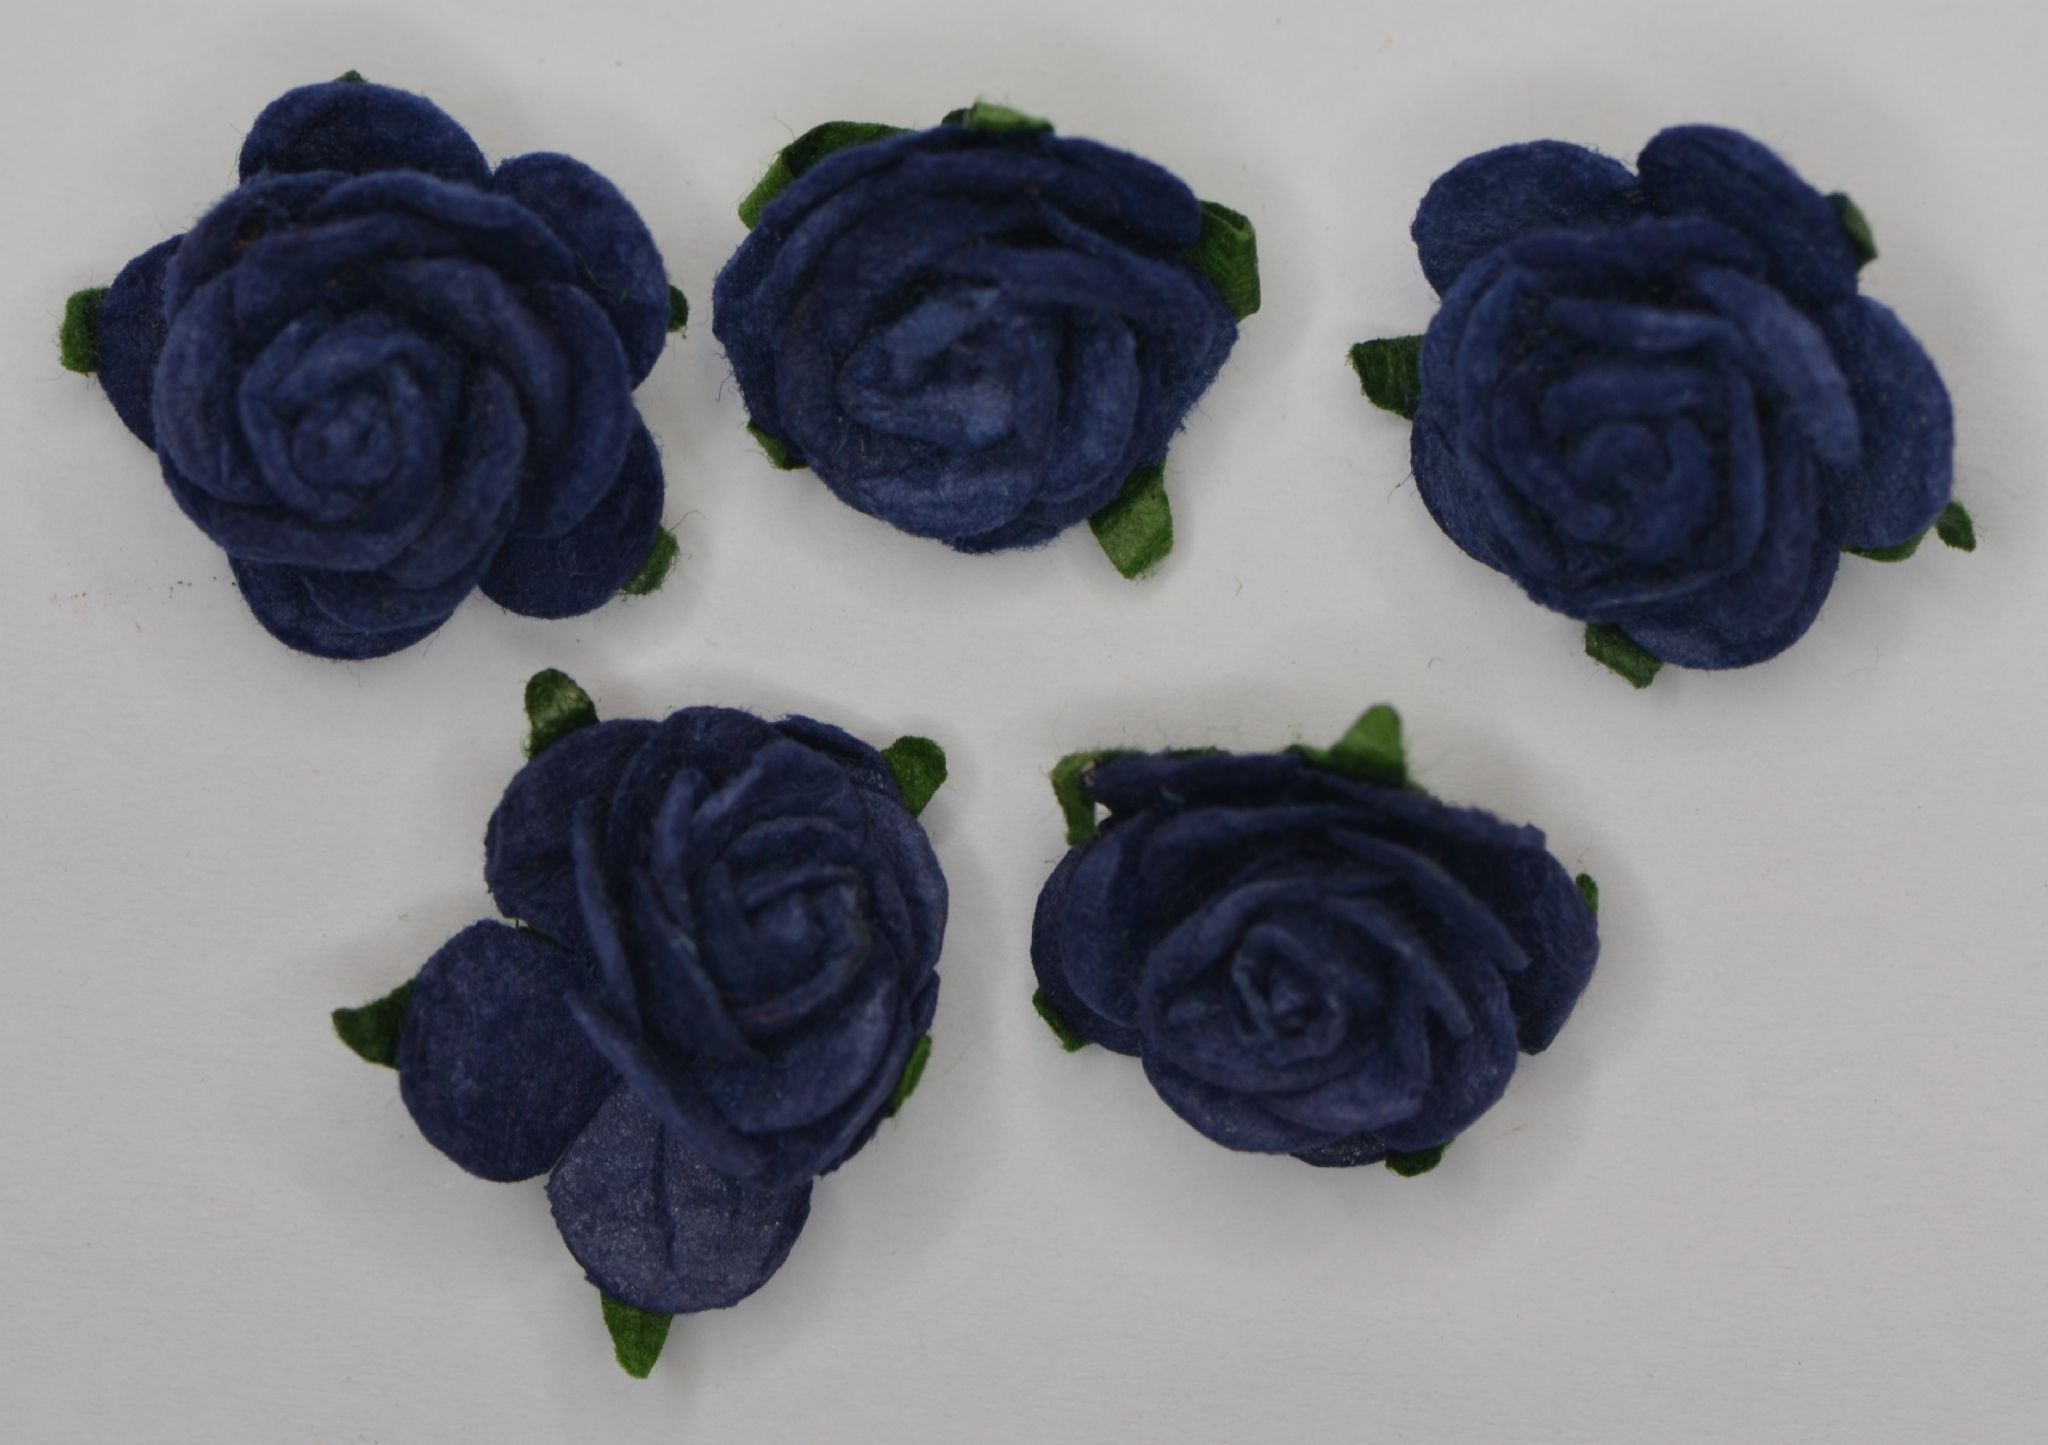 f93fdbc4255f 2.5cm VERY DARK NAVY BLUE Mulberry Paper Roses (only flower head)